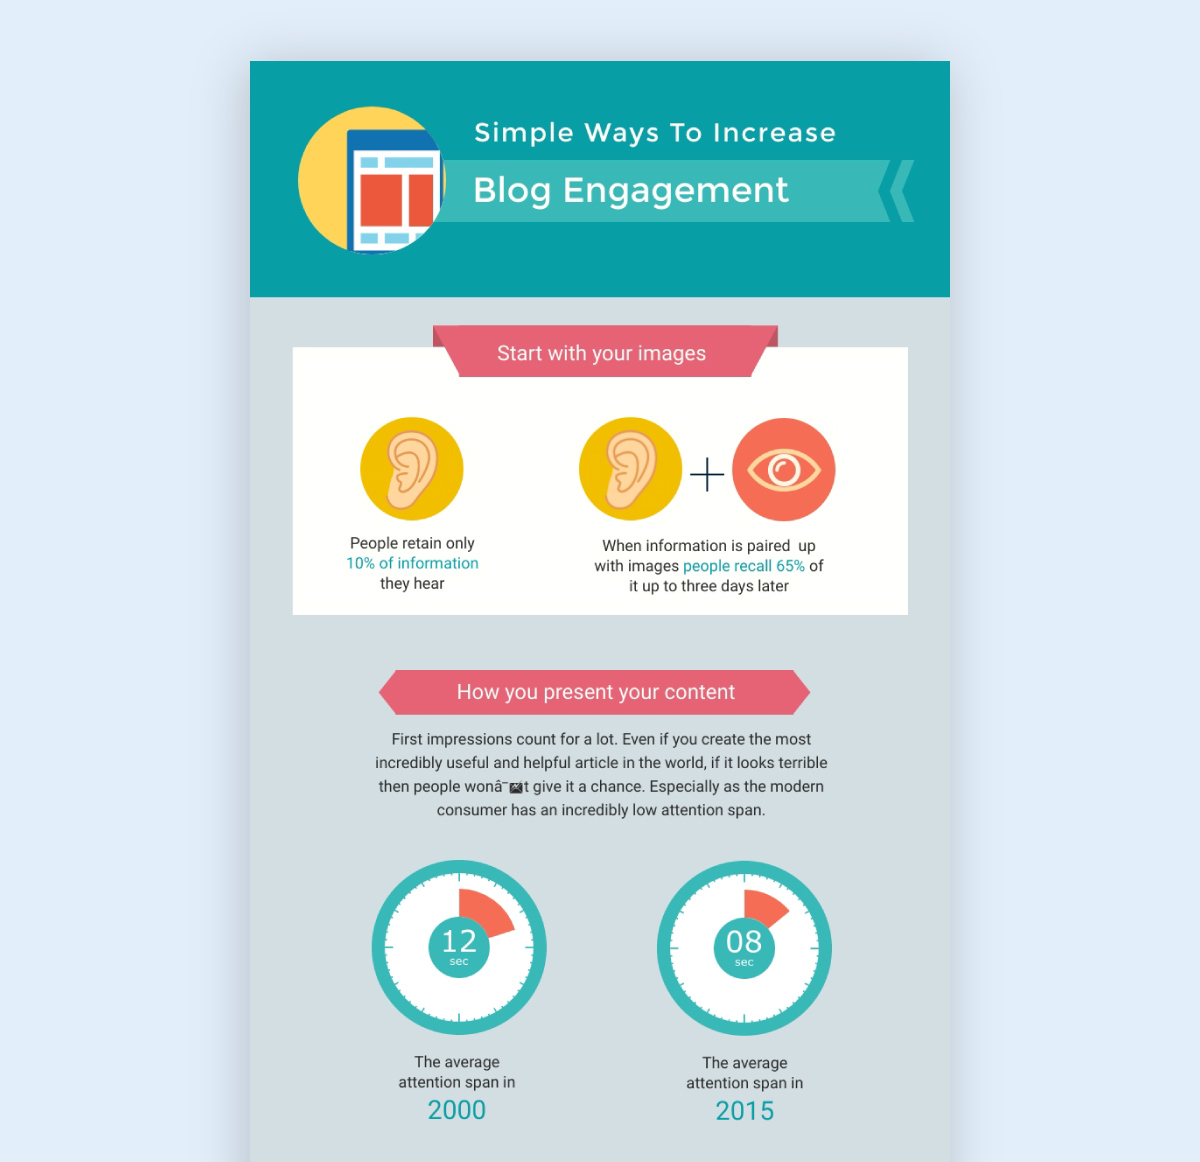 how to make an infographic - choose a relevant topic